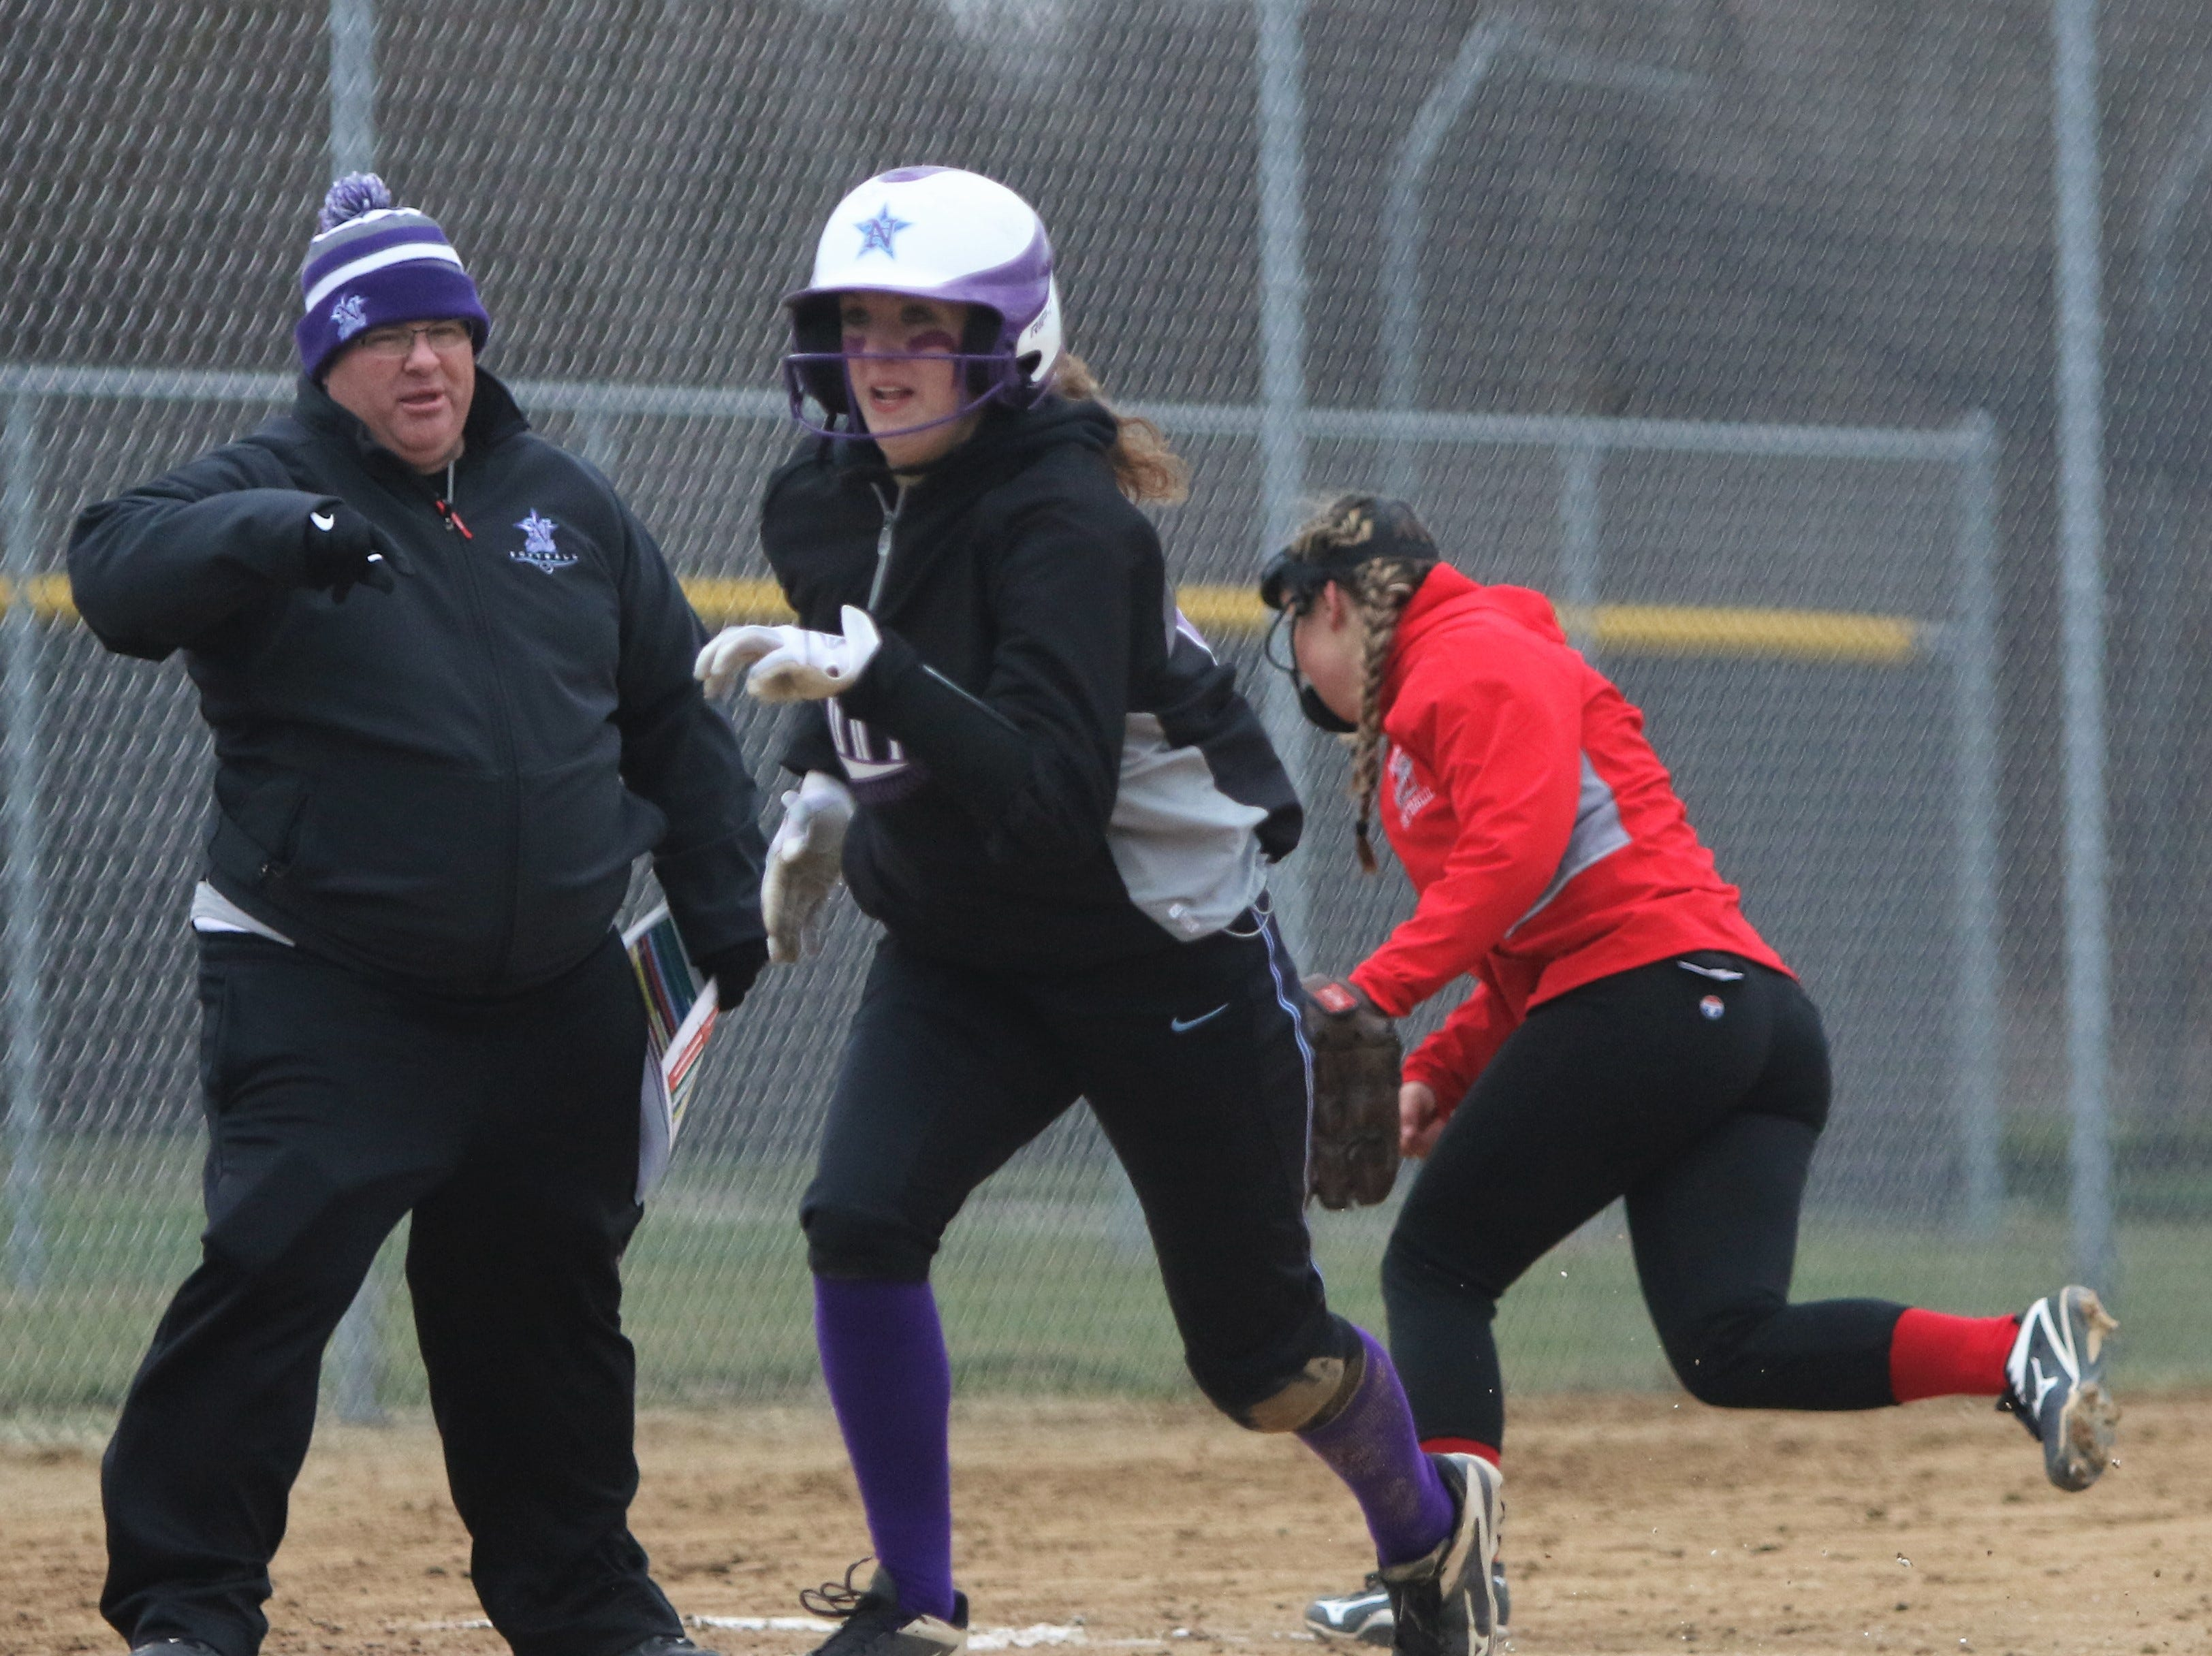 Waukesha North's Jenny Gibbs heads toward home plate on an overthrow of third base by Muskego.